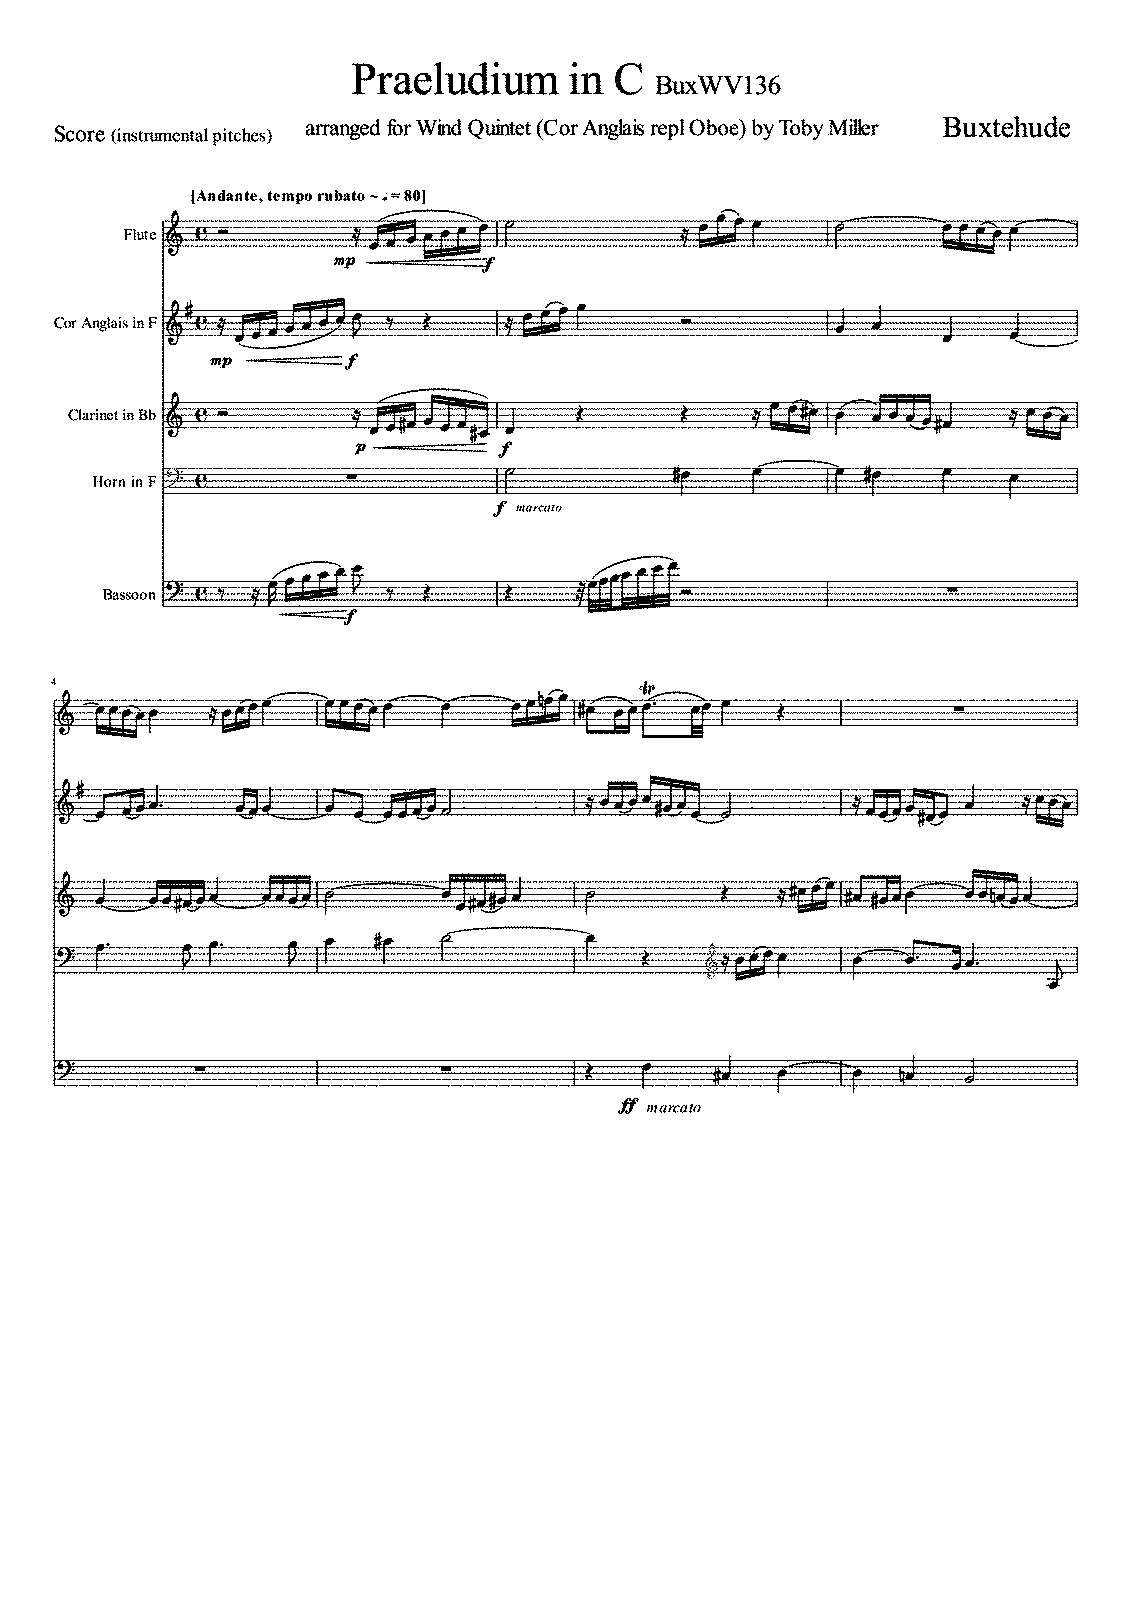 PMLP504563-Buxtehude Prelude BuxWV136 score and notes.pdf